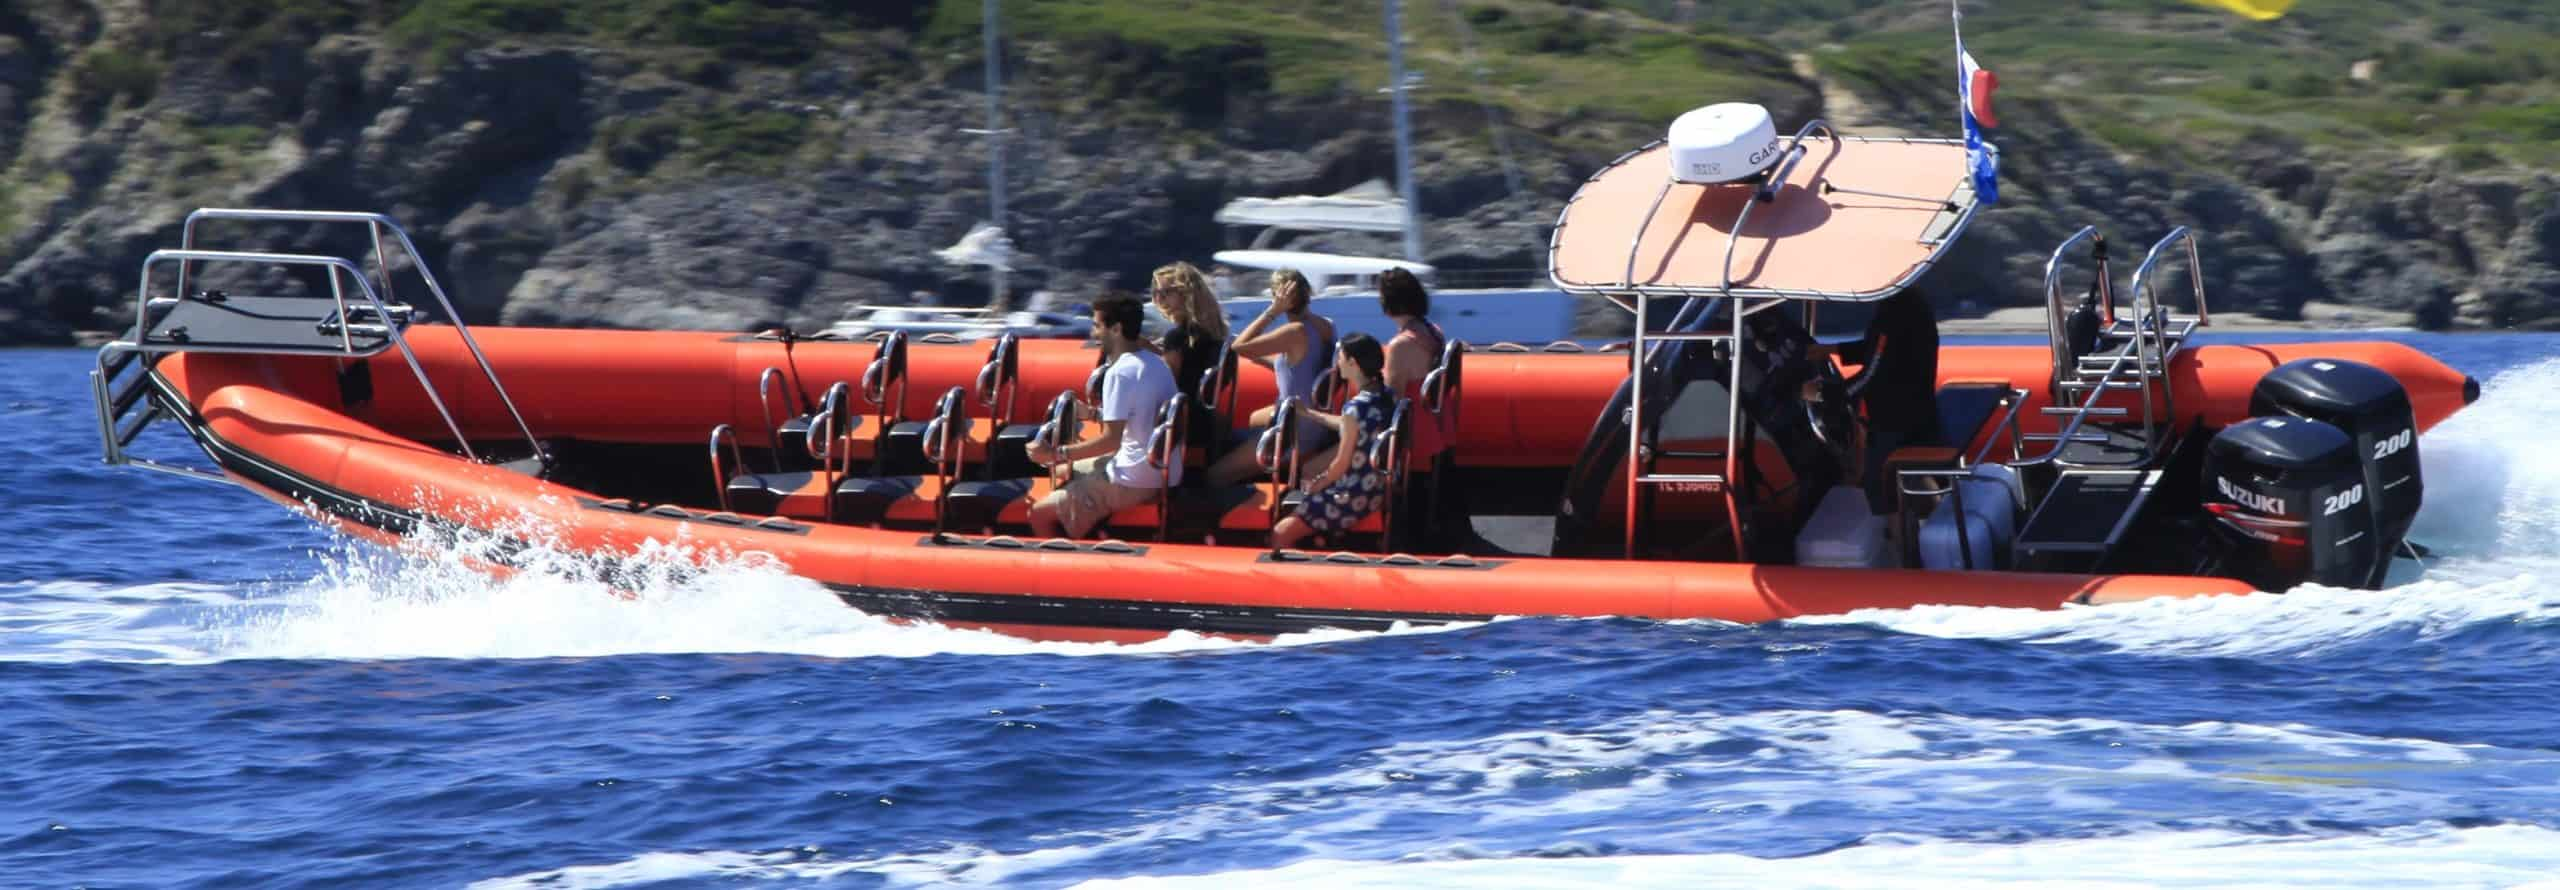 Whale watching Monday 14 june 8:30am